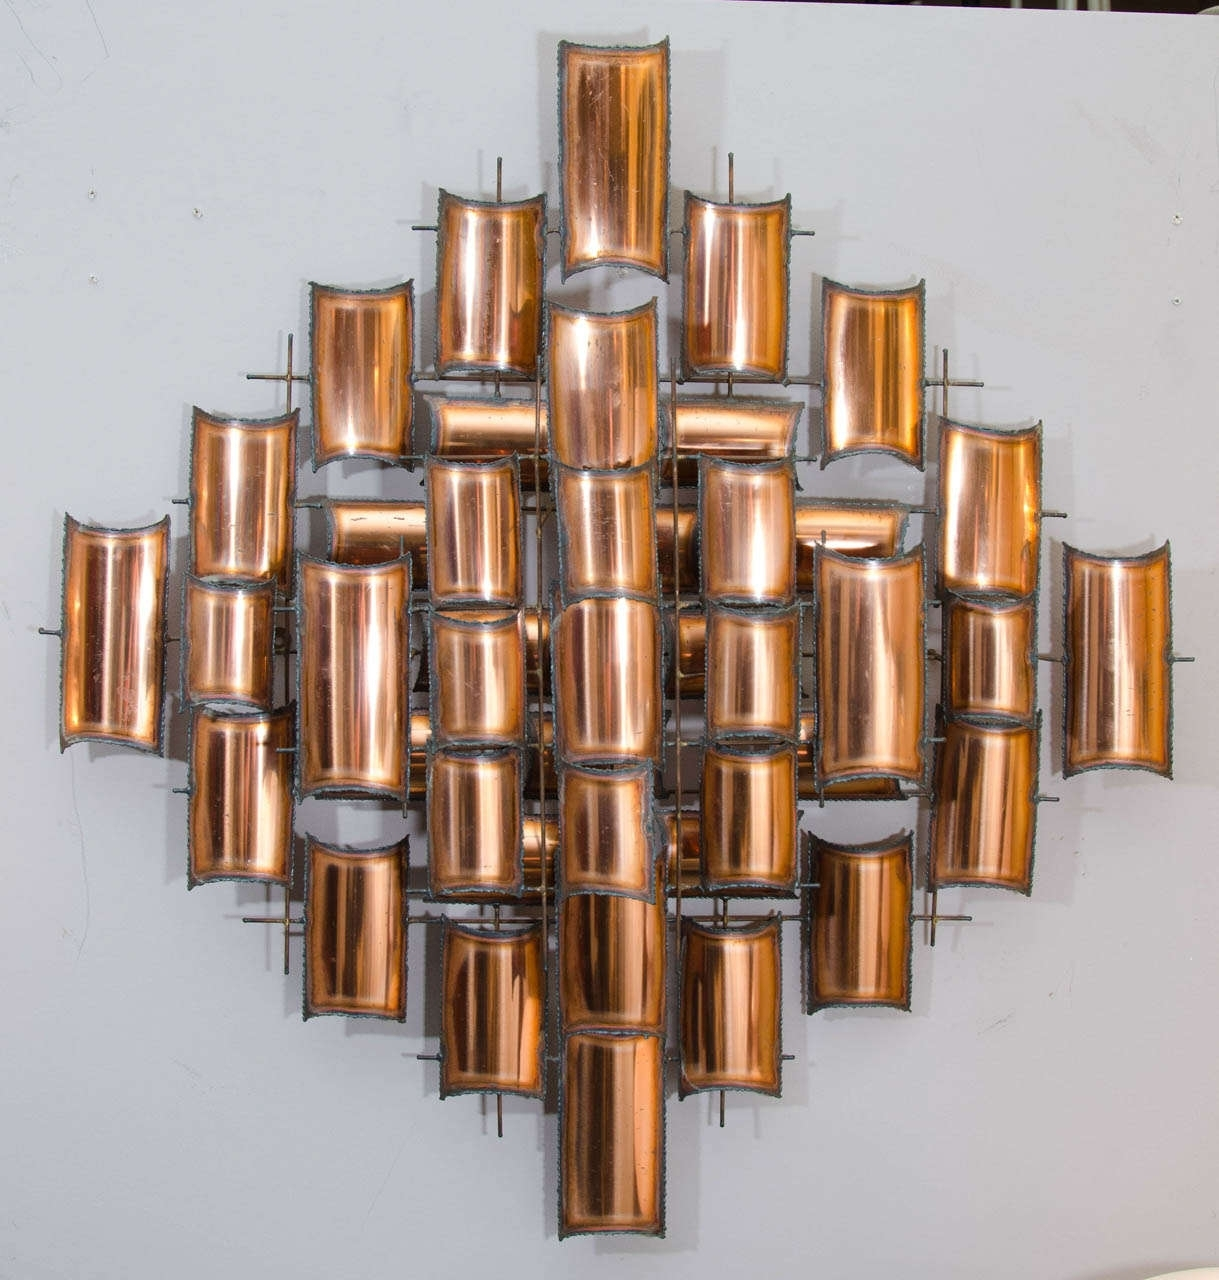 Wall Art Designs: Copper Wall Art Home Decorate Wall Art Abstract With Regard To Most Recently Released Abstract Outdoor Wall Art (View 18 of 20)